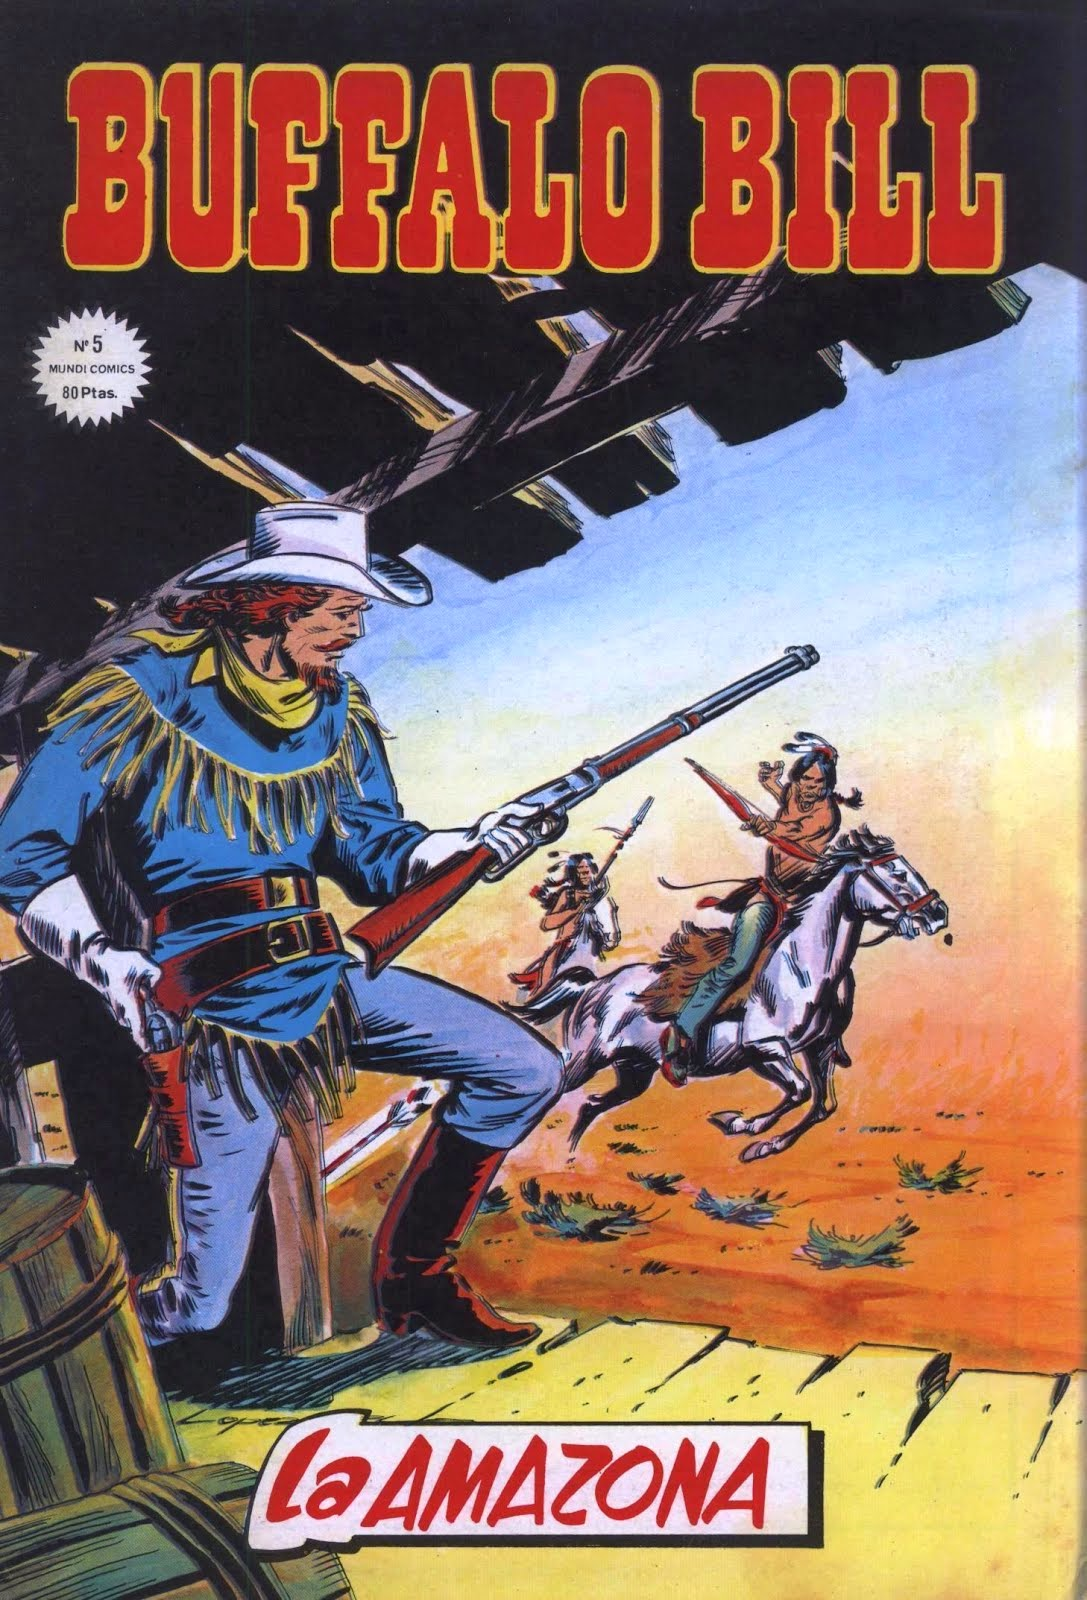 BUFFALO BILL MUNDI COMICS